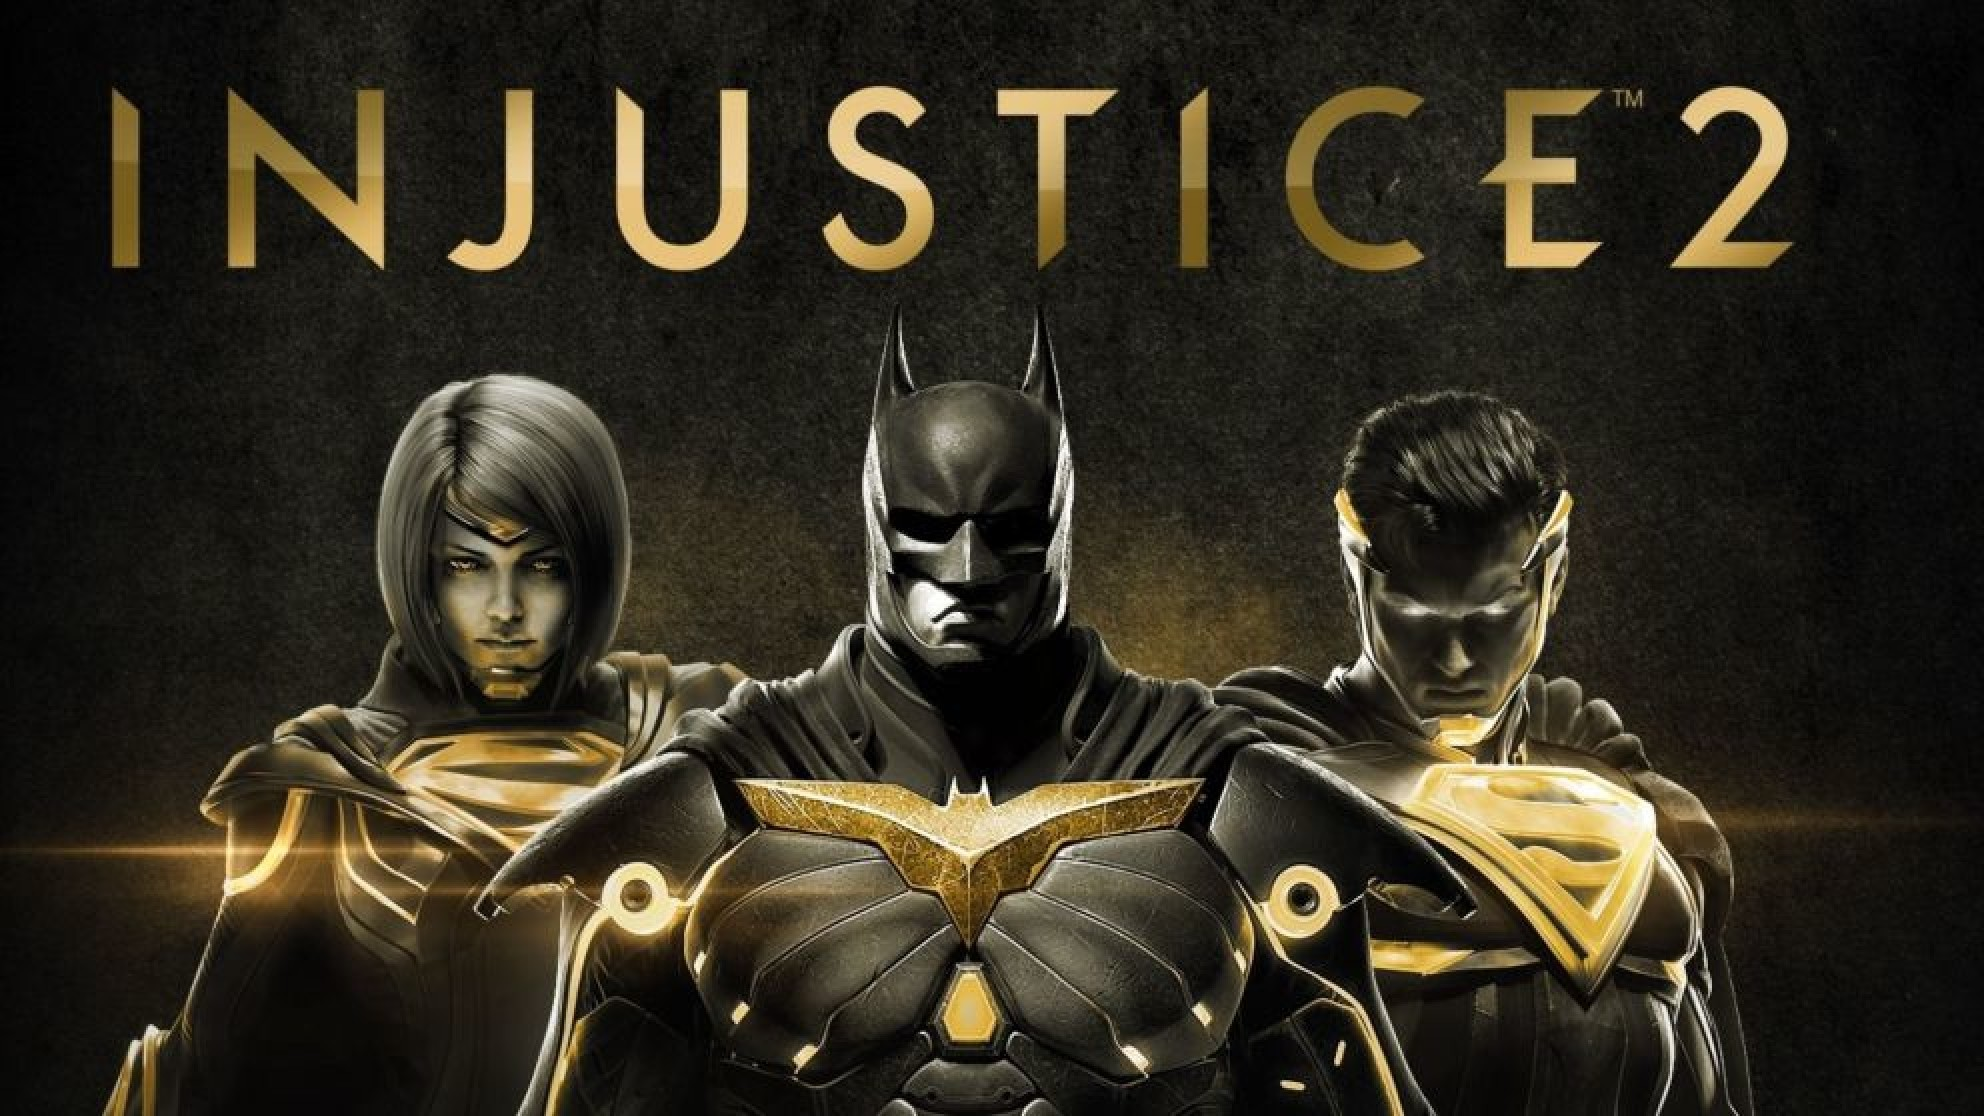 Concept art of characters that we'll never see in Injustice 2